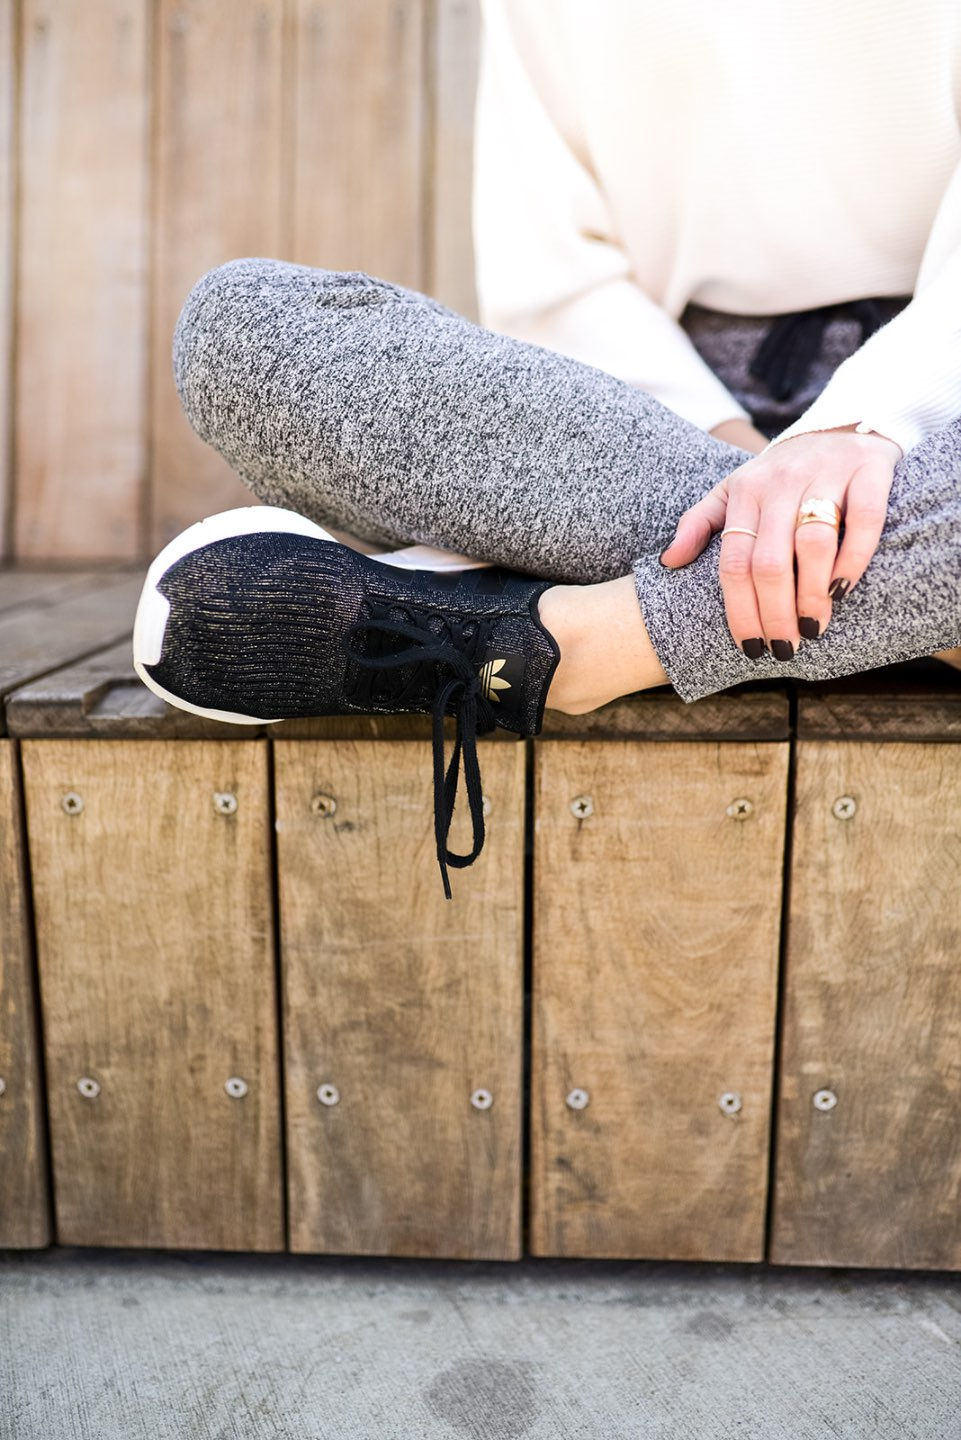 Adjusting to a New Normal by popular NC lifestyle blog, I'm Fixin' To: image of a woman wearing a Amazon GABERLY Boat Neck Batwing Sleeves Dolman Knitted Sweaters, Nordstrom Serene Cozy Mélange Jogger Pants ZELLA, and Amazon adidas Women's Cloudfoam Pure Running Shoe.